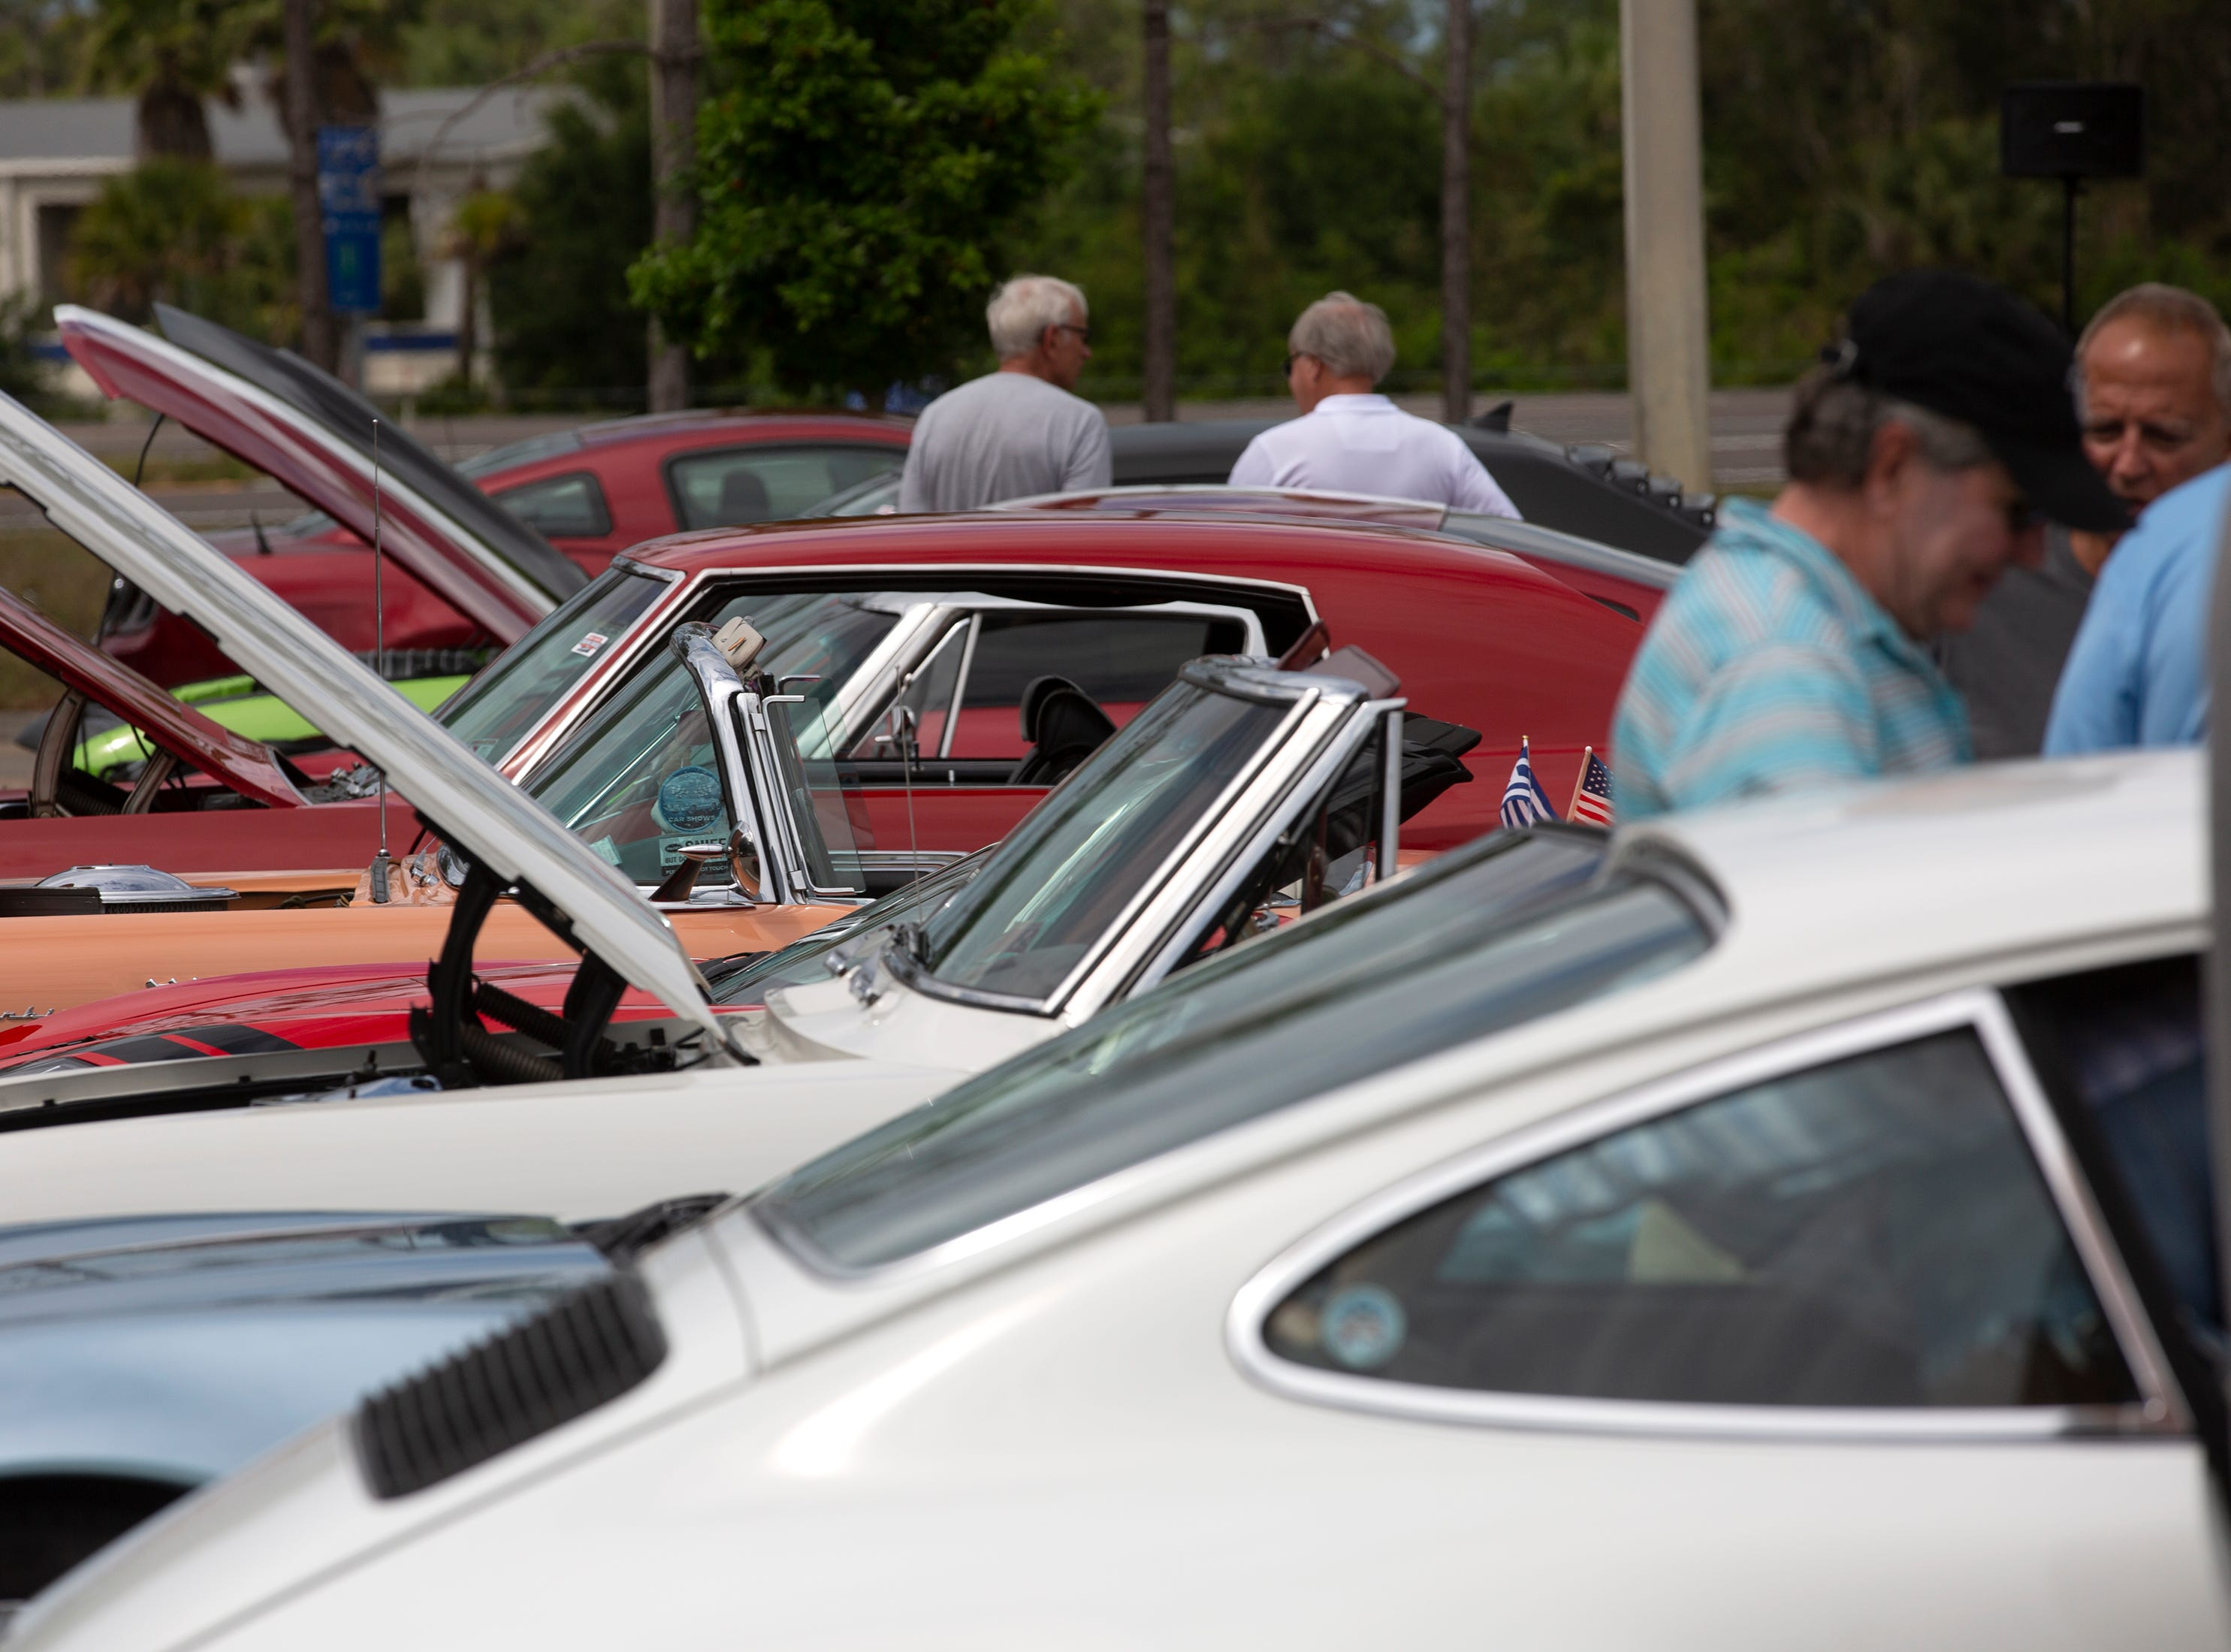 Cars enthusiasts look at cars displayed in a parking lot at the Miromar Outlets during the Cruis'n for a Cause event on Saturday, April 13, 2019 in Estero.